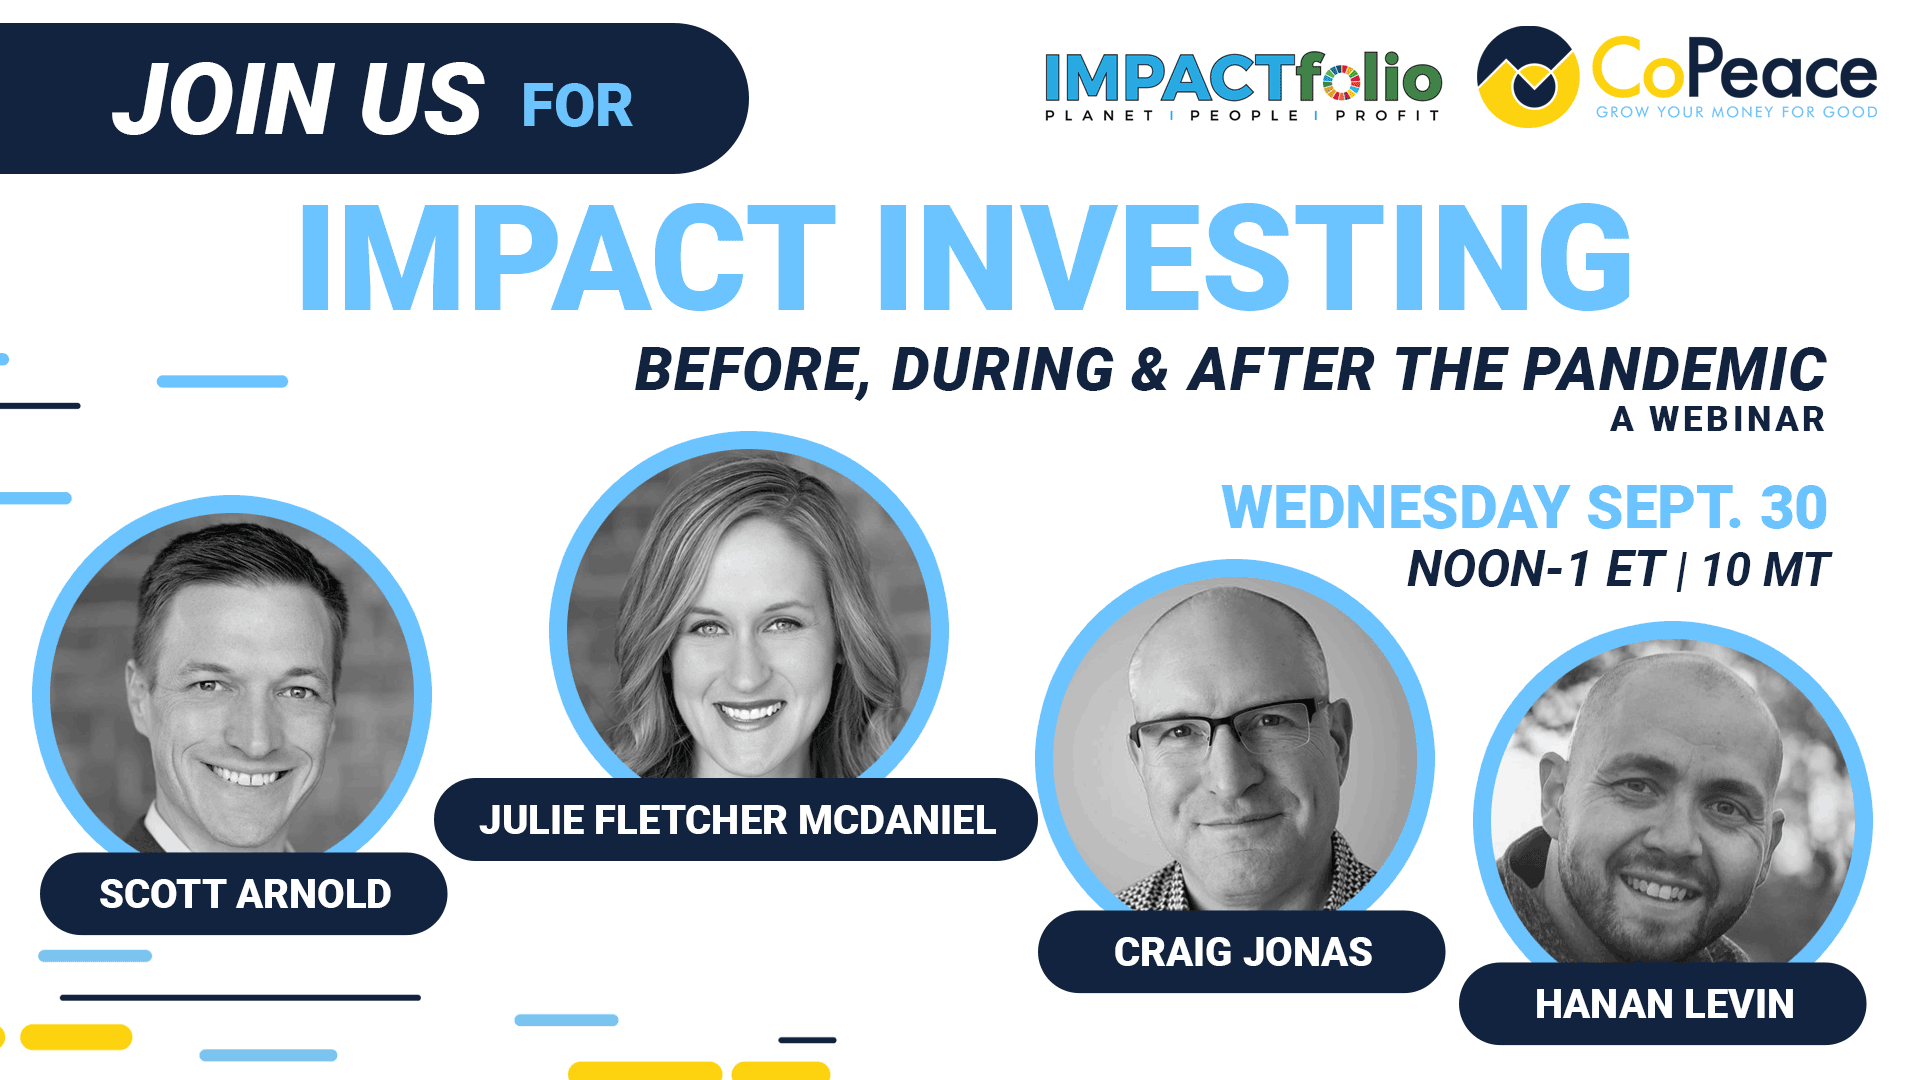 Please join us on September 30th to learn about Impact Investing: Before, During, and After the Pandemic Thumbnail